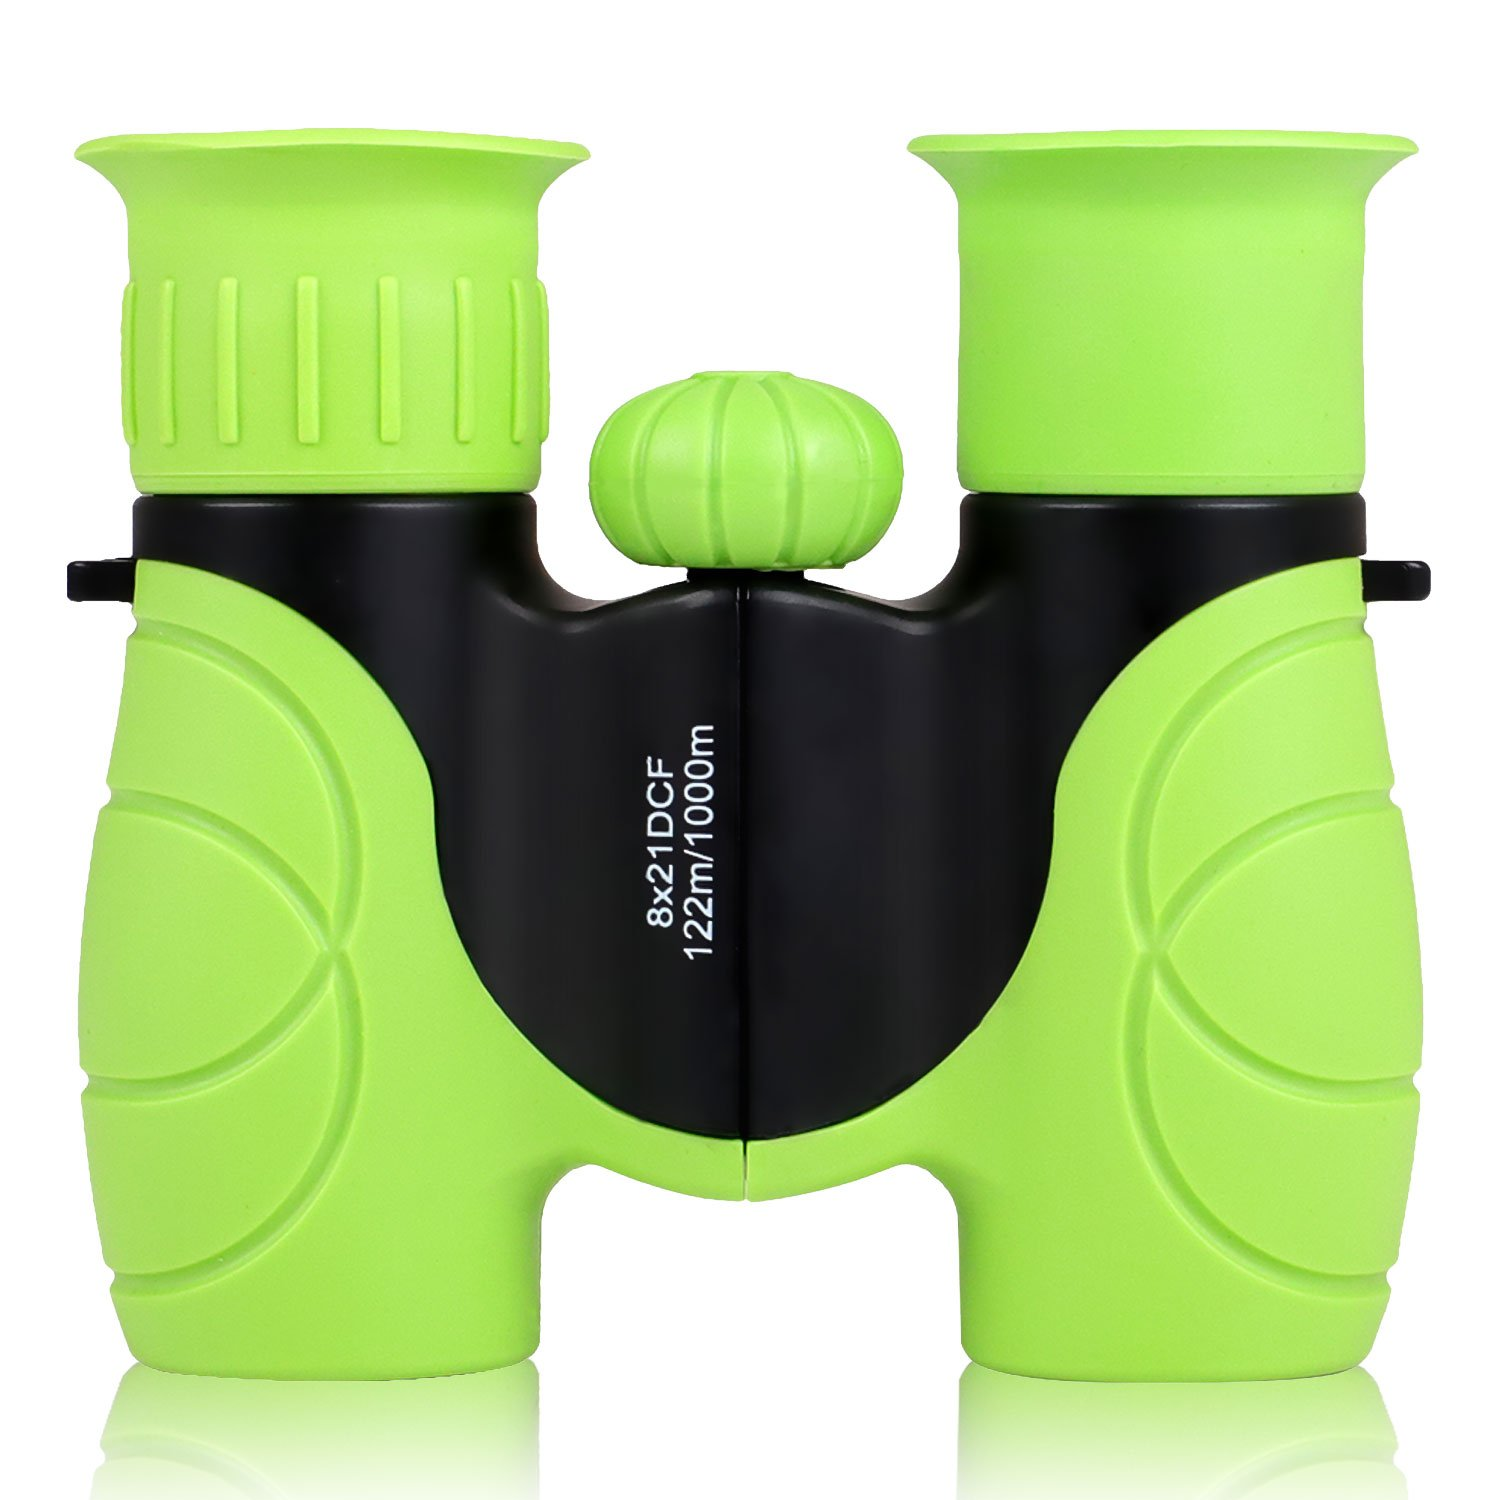 8 x 21 Compact Binoculars with Protective Rubber for Bird Watching Green Kids Binoculars Foldable and Easy Focus for Boys and Girls Hunting